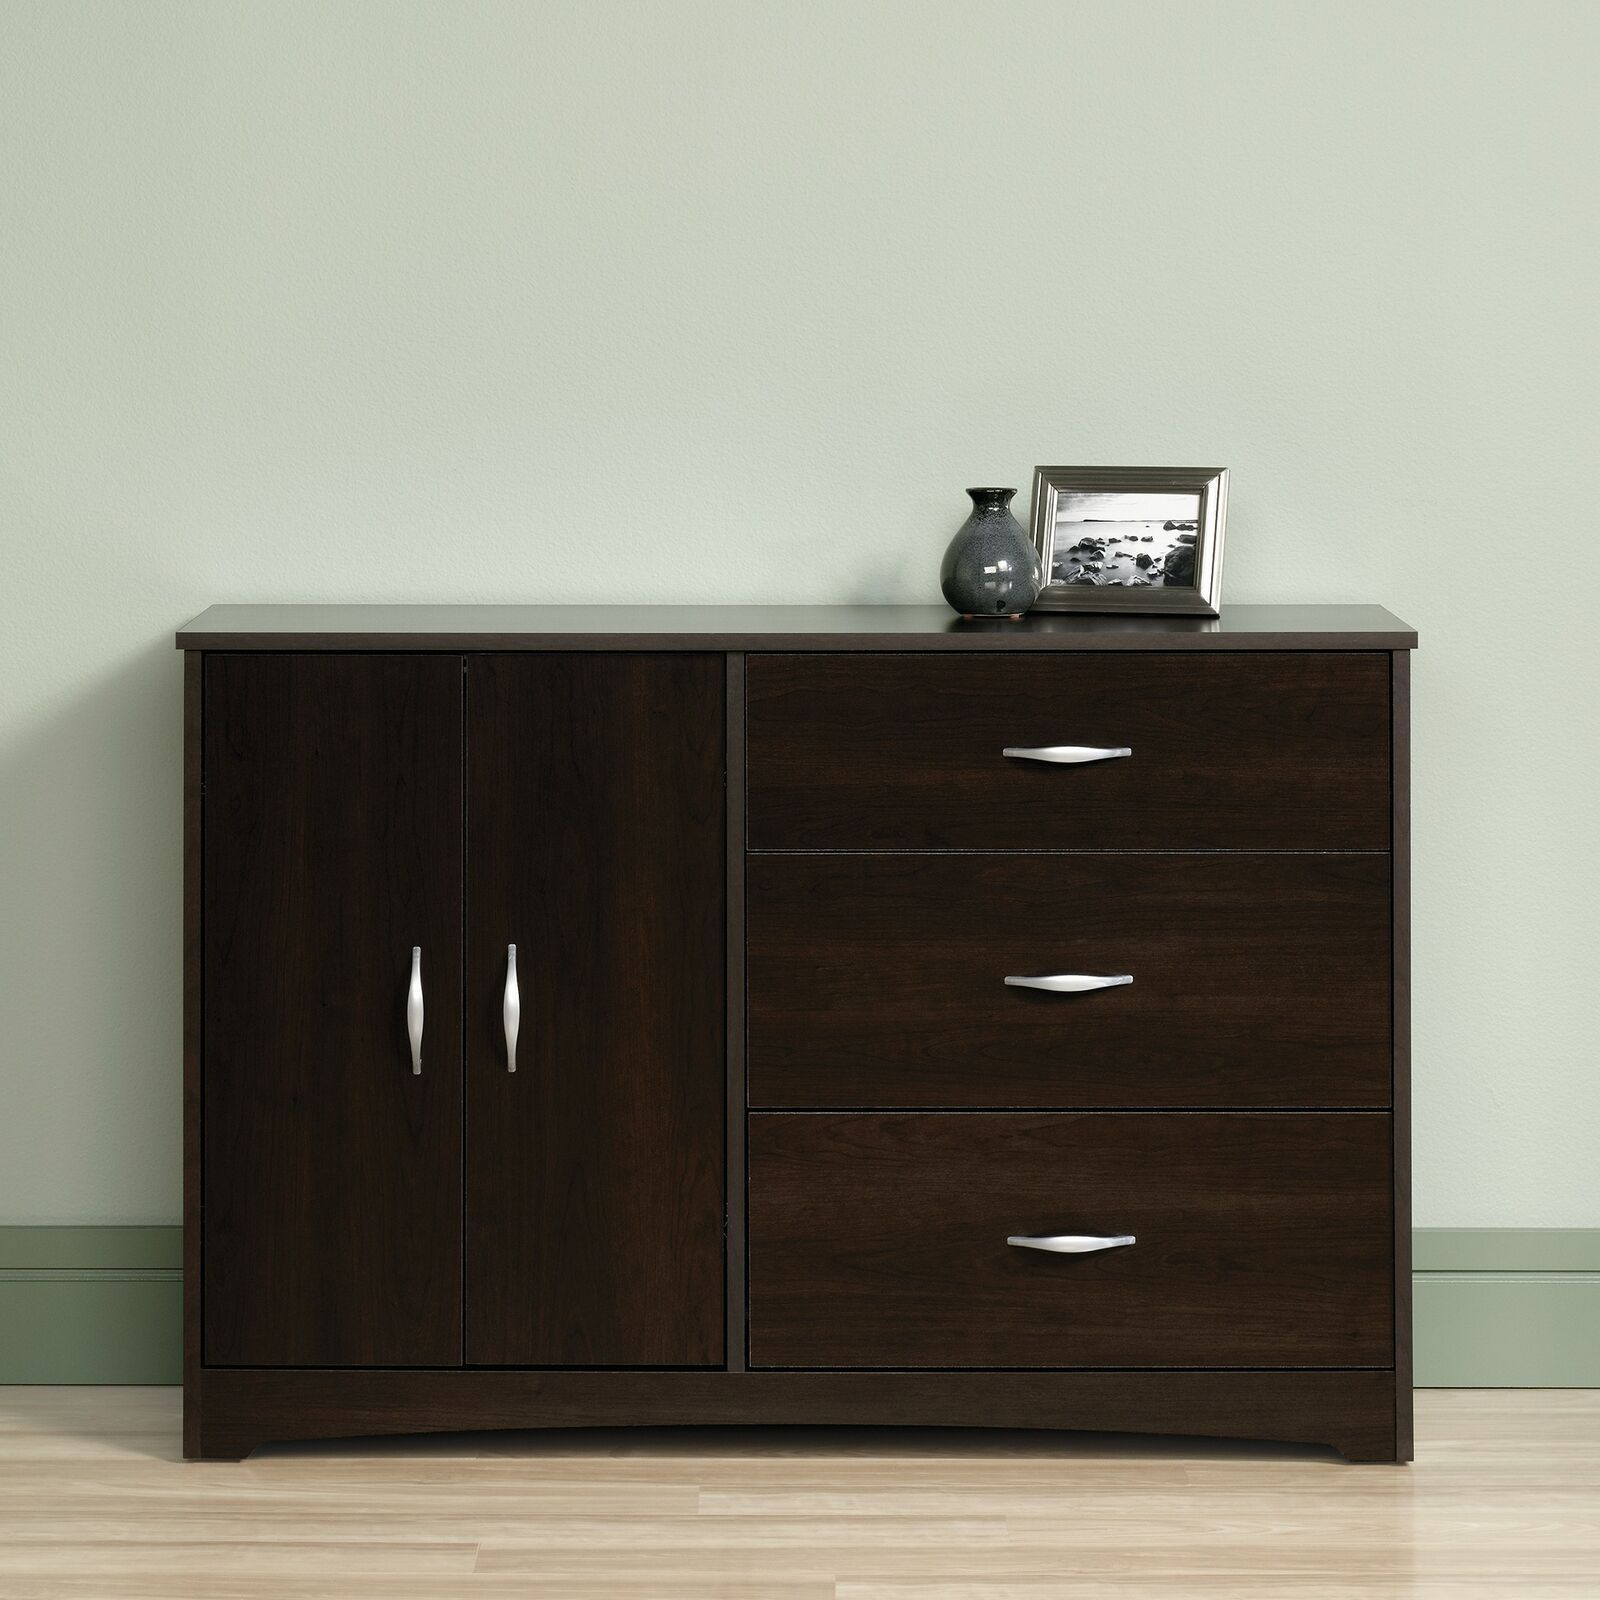 Details About Dark Brown Wooden Chest Drawers Dresser Combo